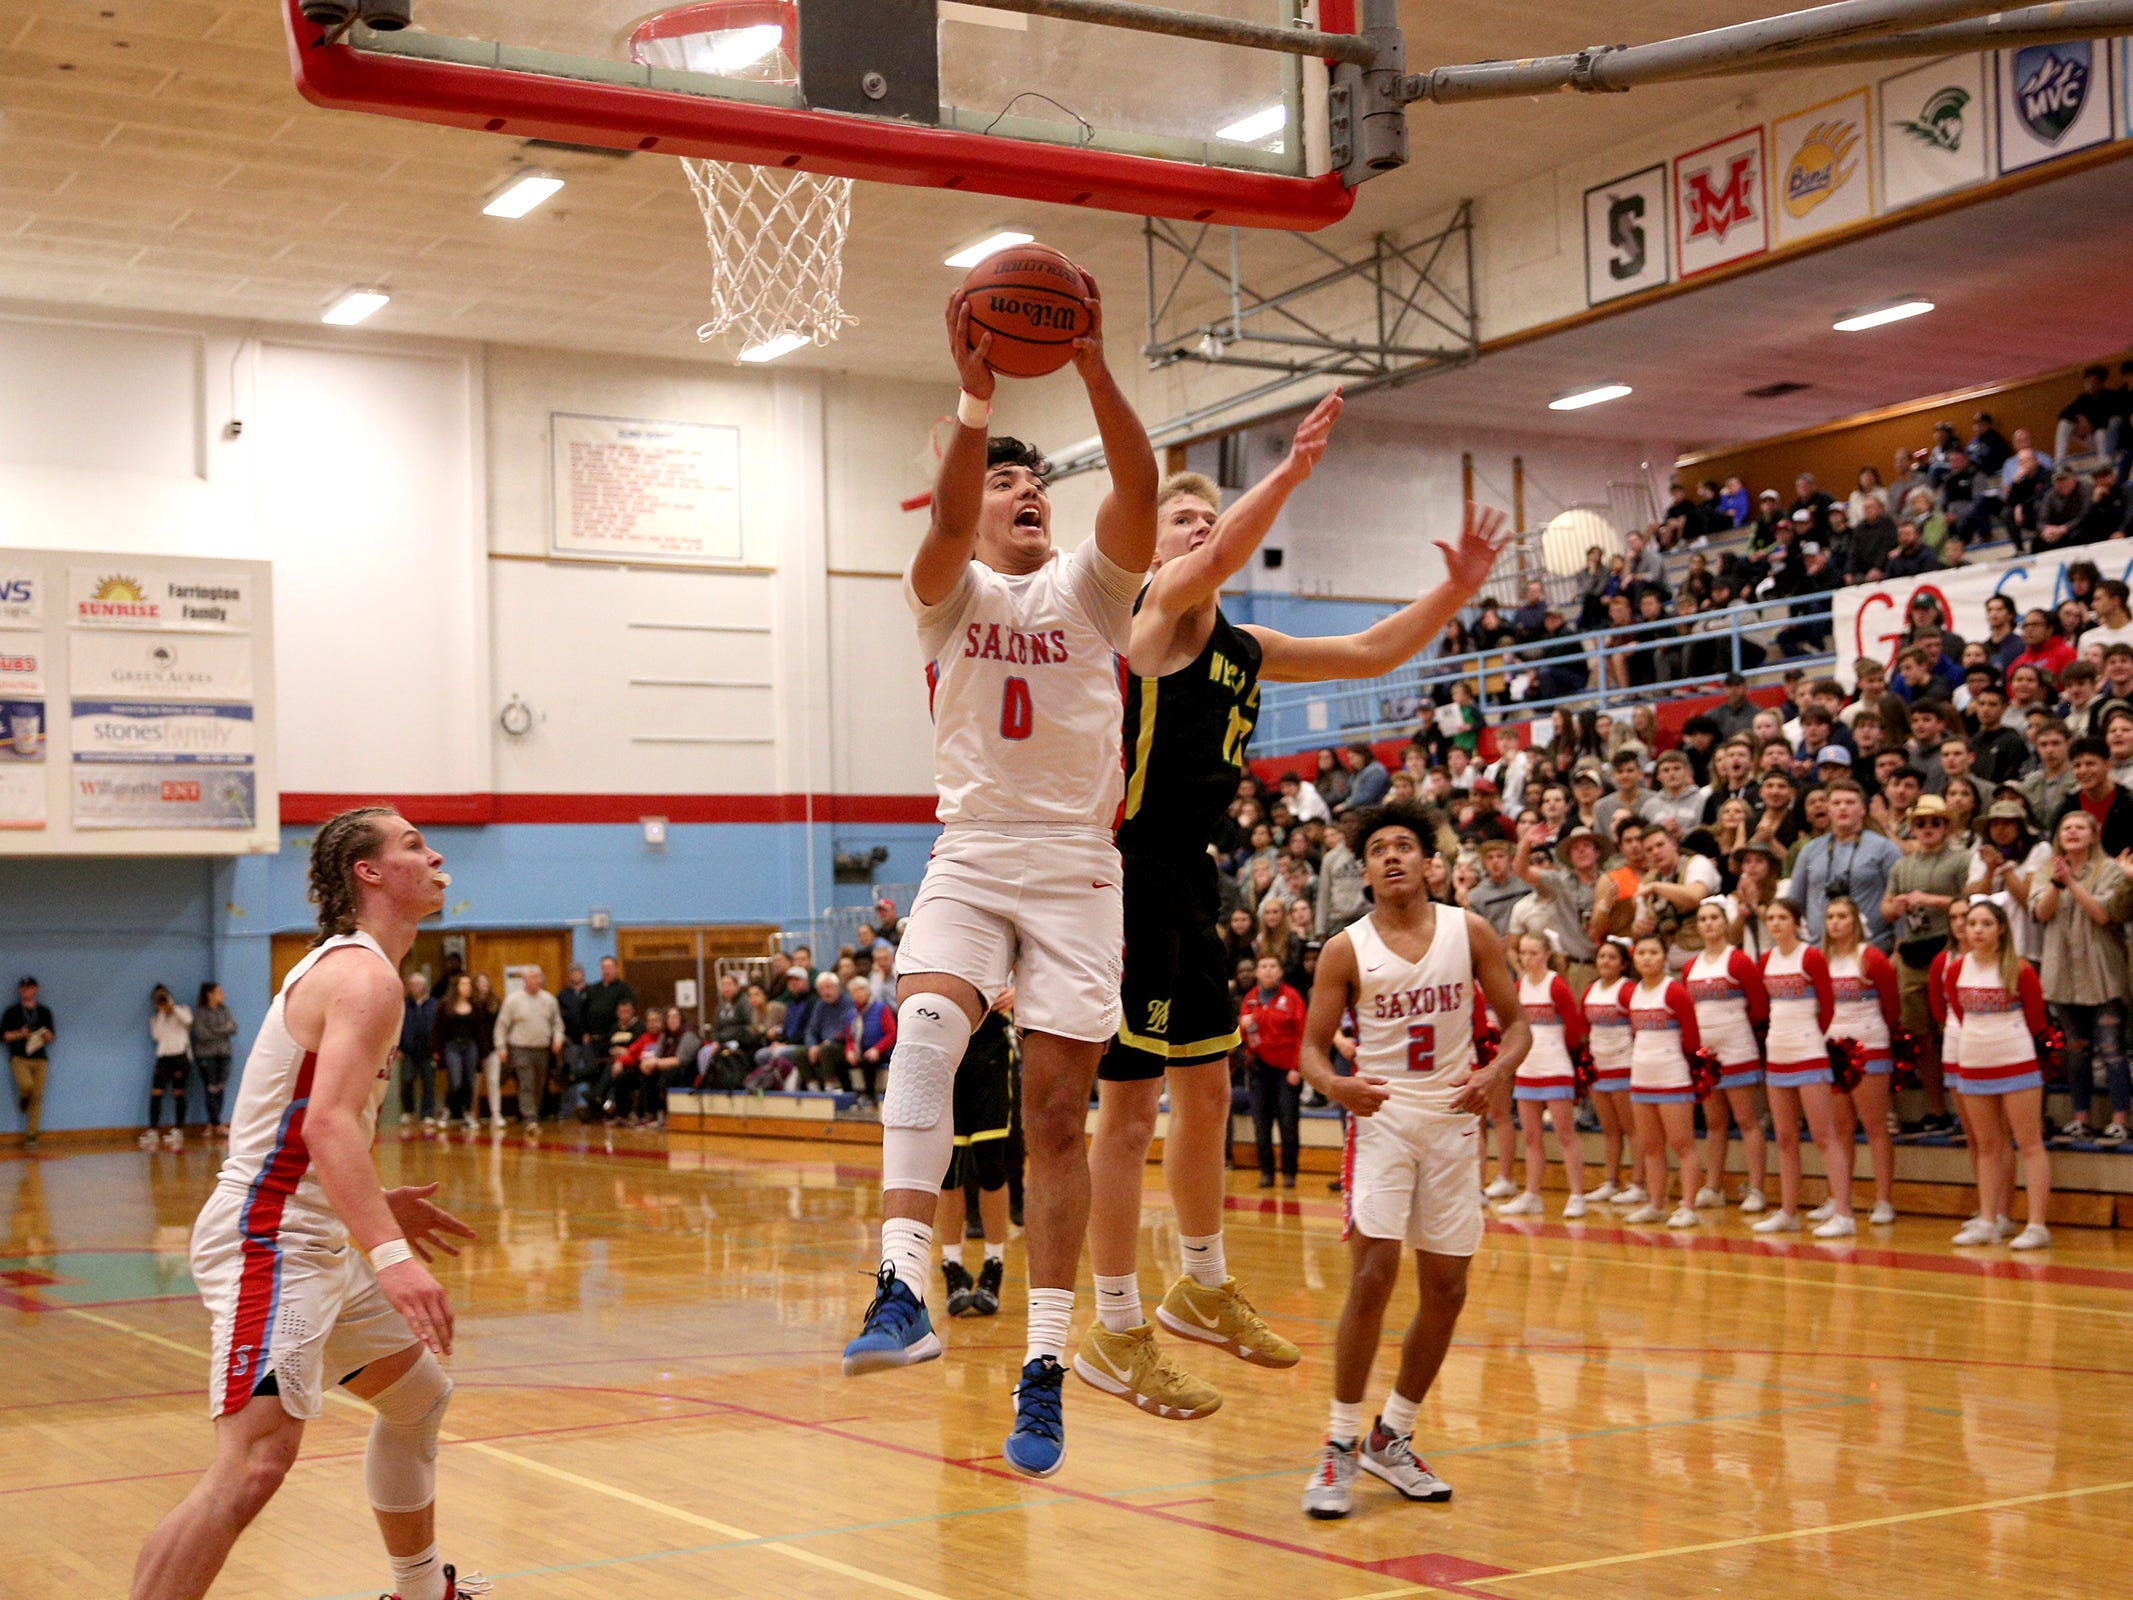 South Salem's Treyden Harris (0) rebounds the ball during the South Salem vs. West Linn boys basketball OSAA playoff game at South Salem High School on Friday, March 1, 2019.